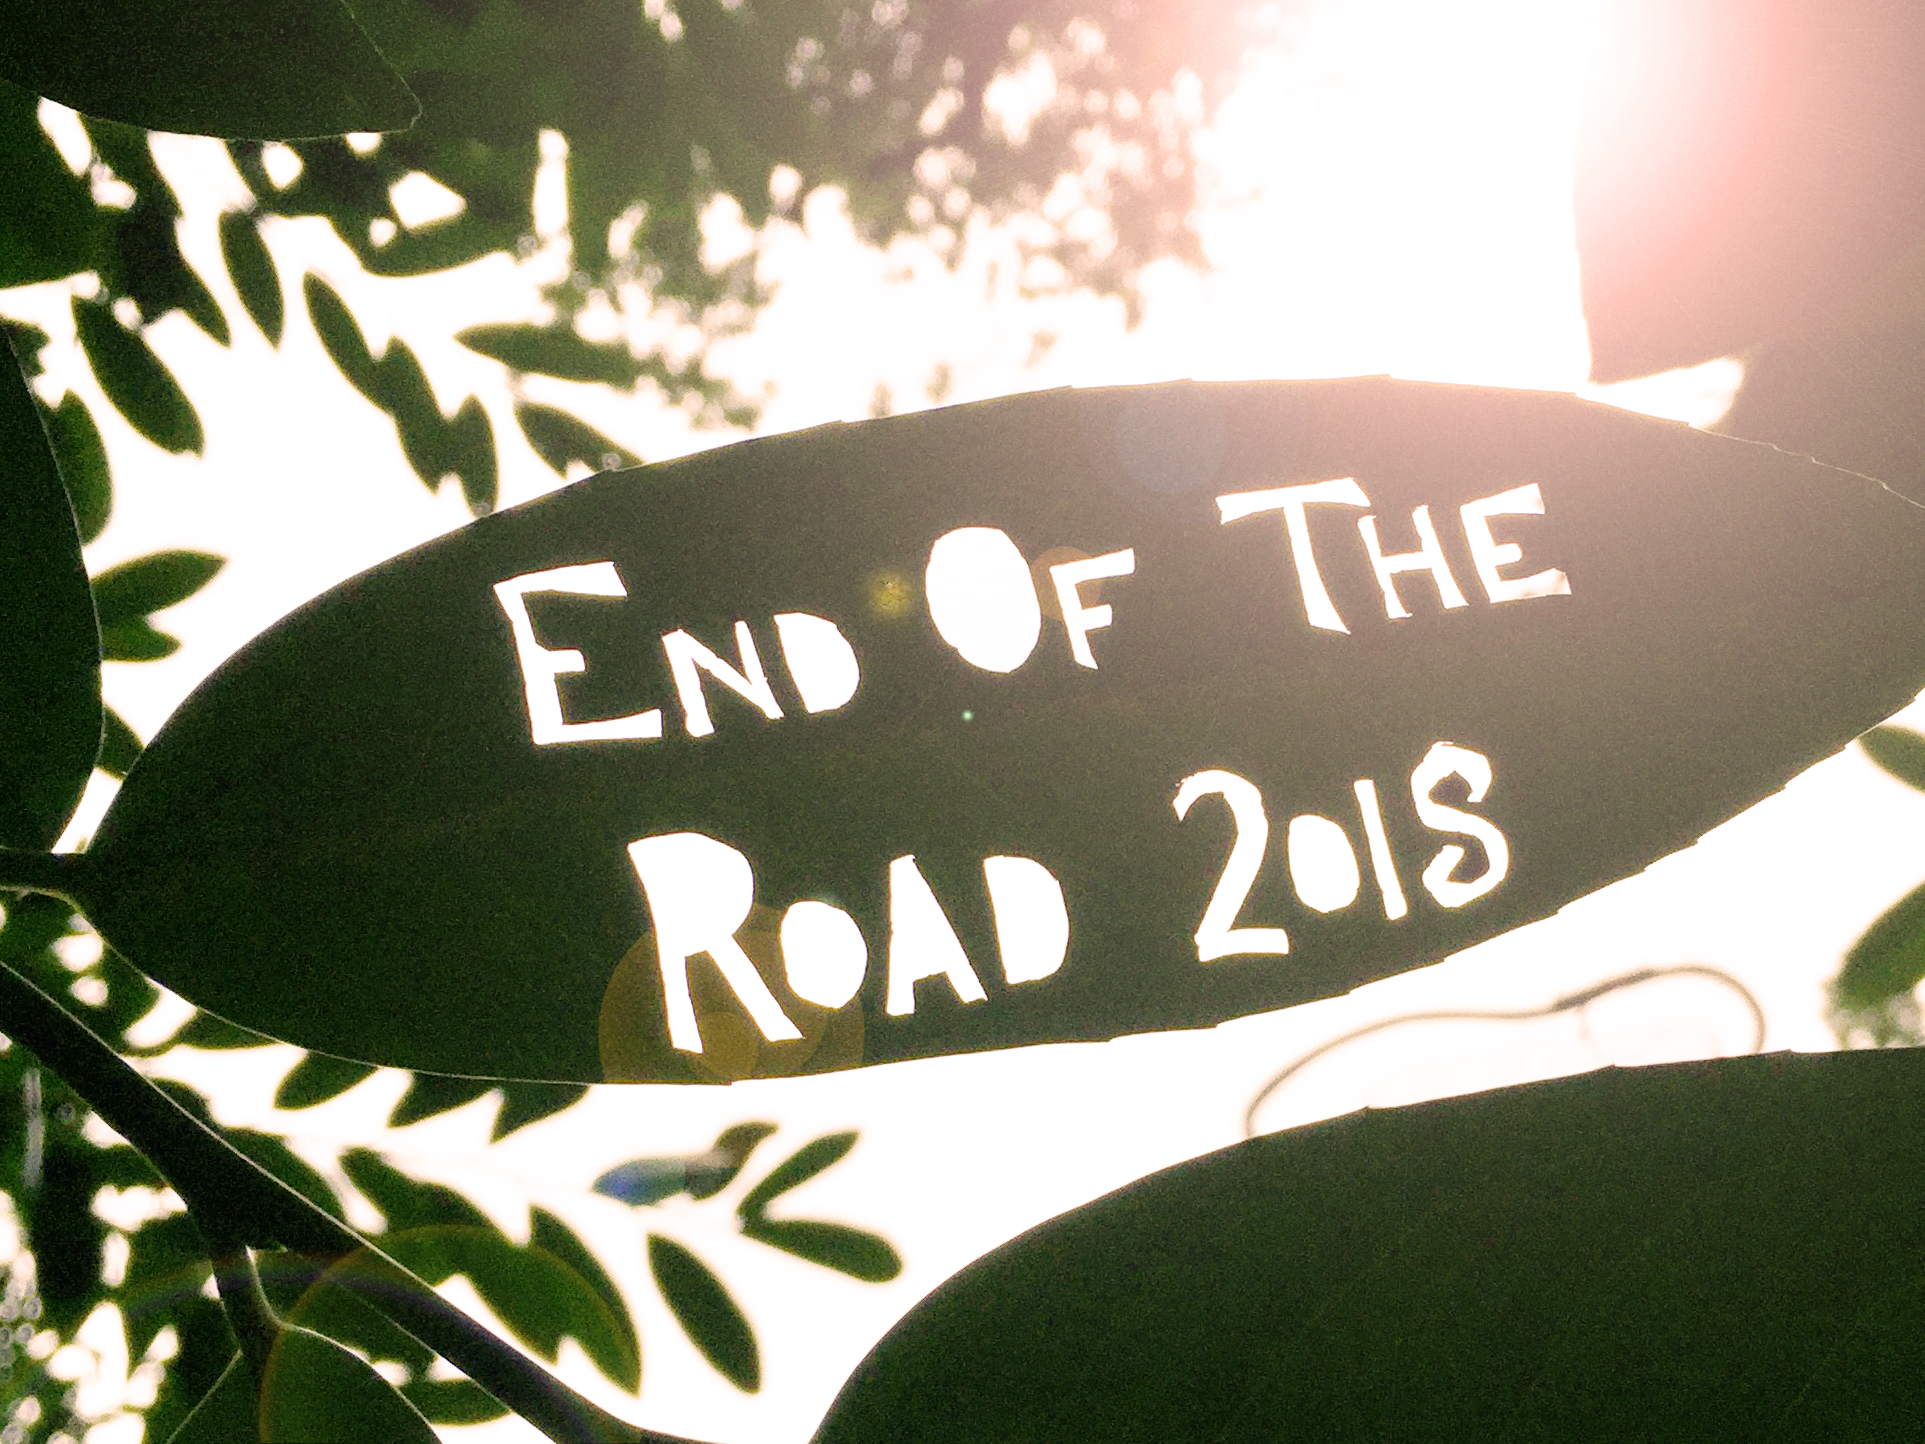 "With the sun behind it we see a leaf with lettering cut out of it. The words read ""End of the Road 2018'."